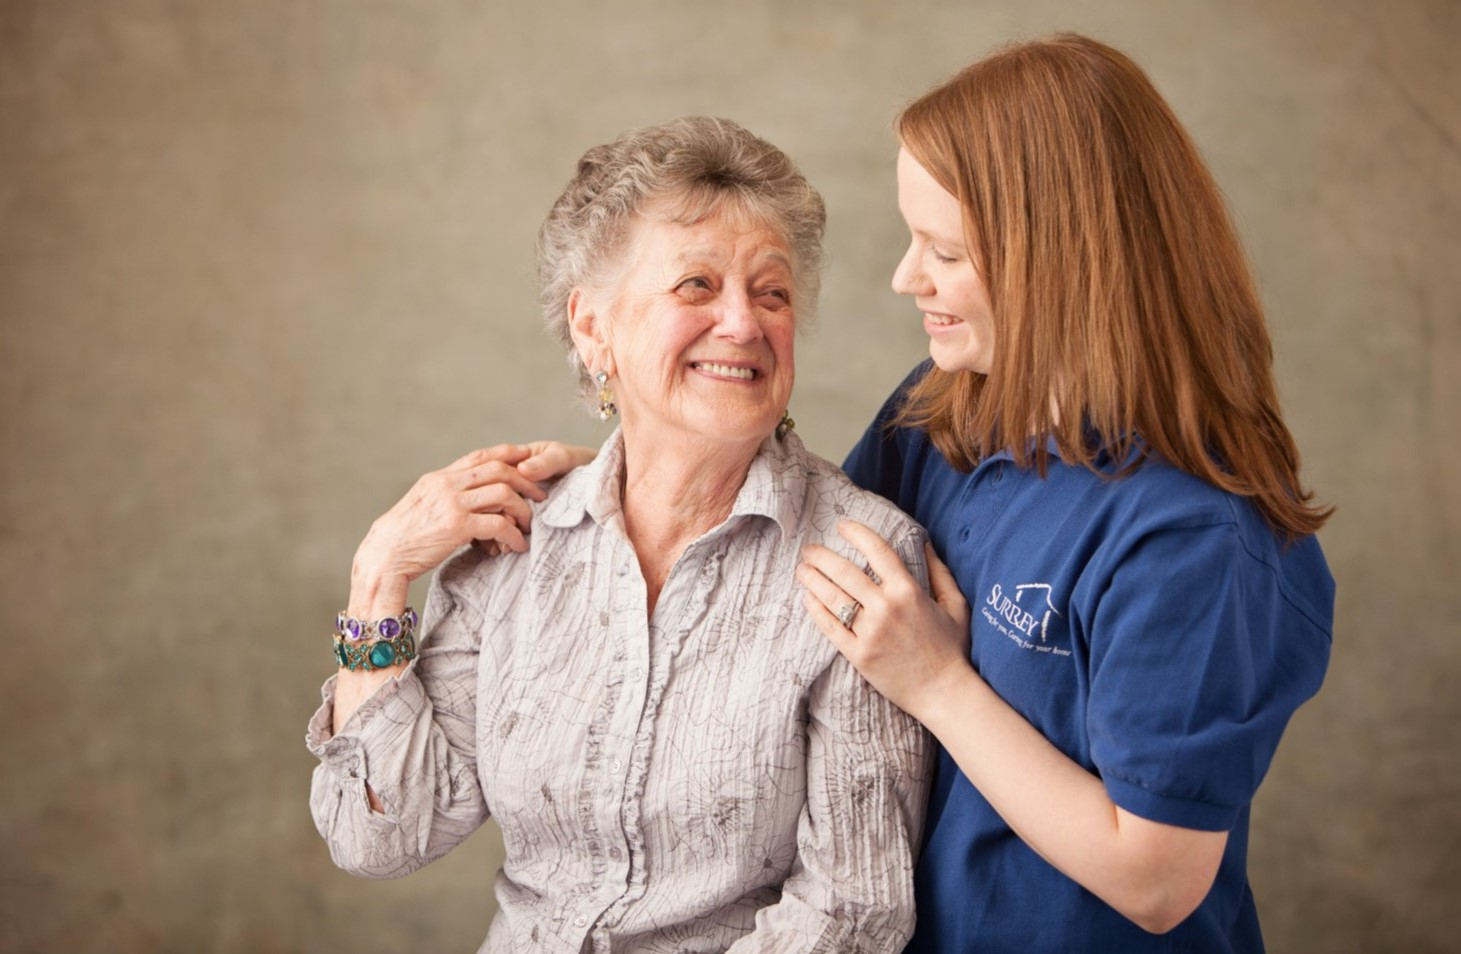 Surrey's Weekend Respite Care Gives Caregivers Much-Needed Break to Reduce Stress, Refresh Energy